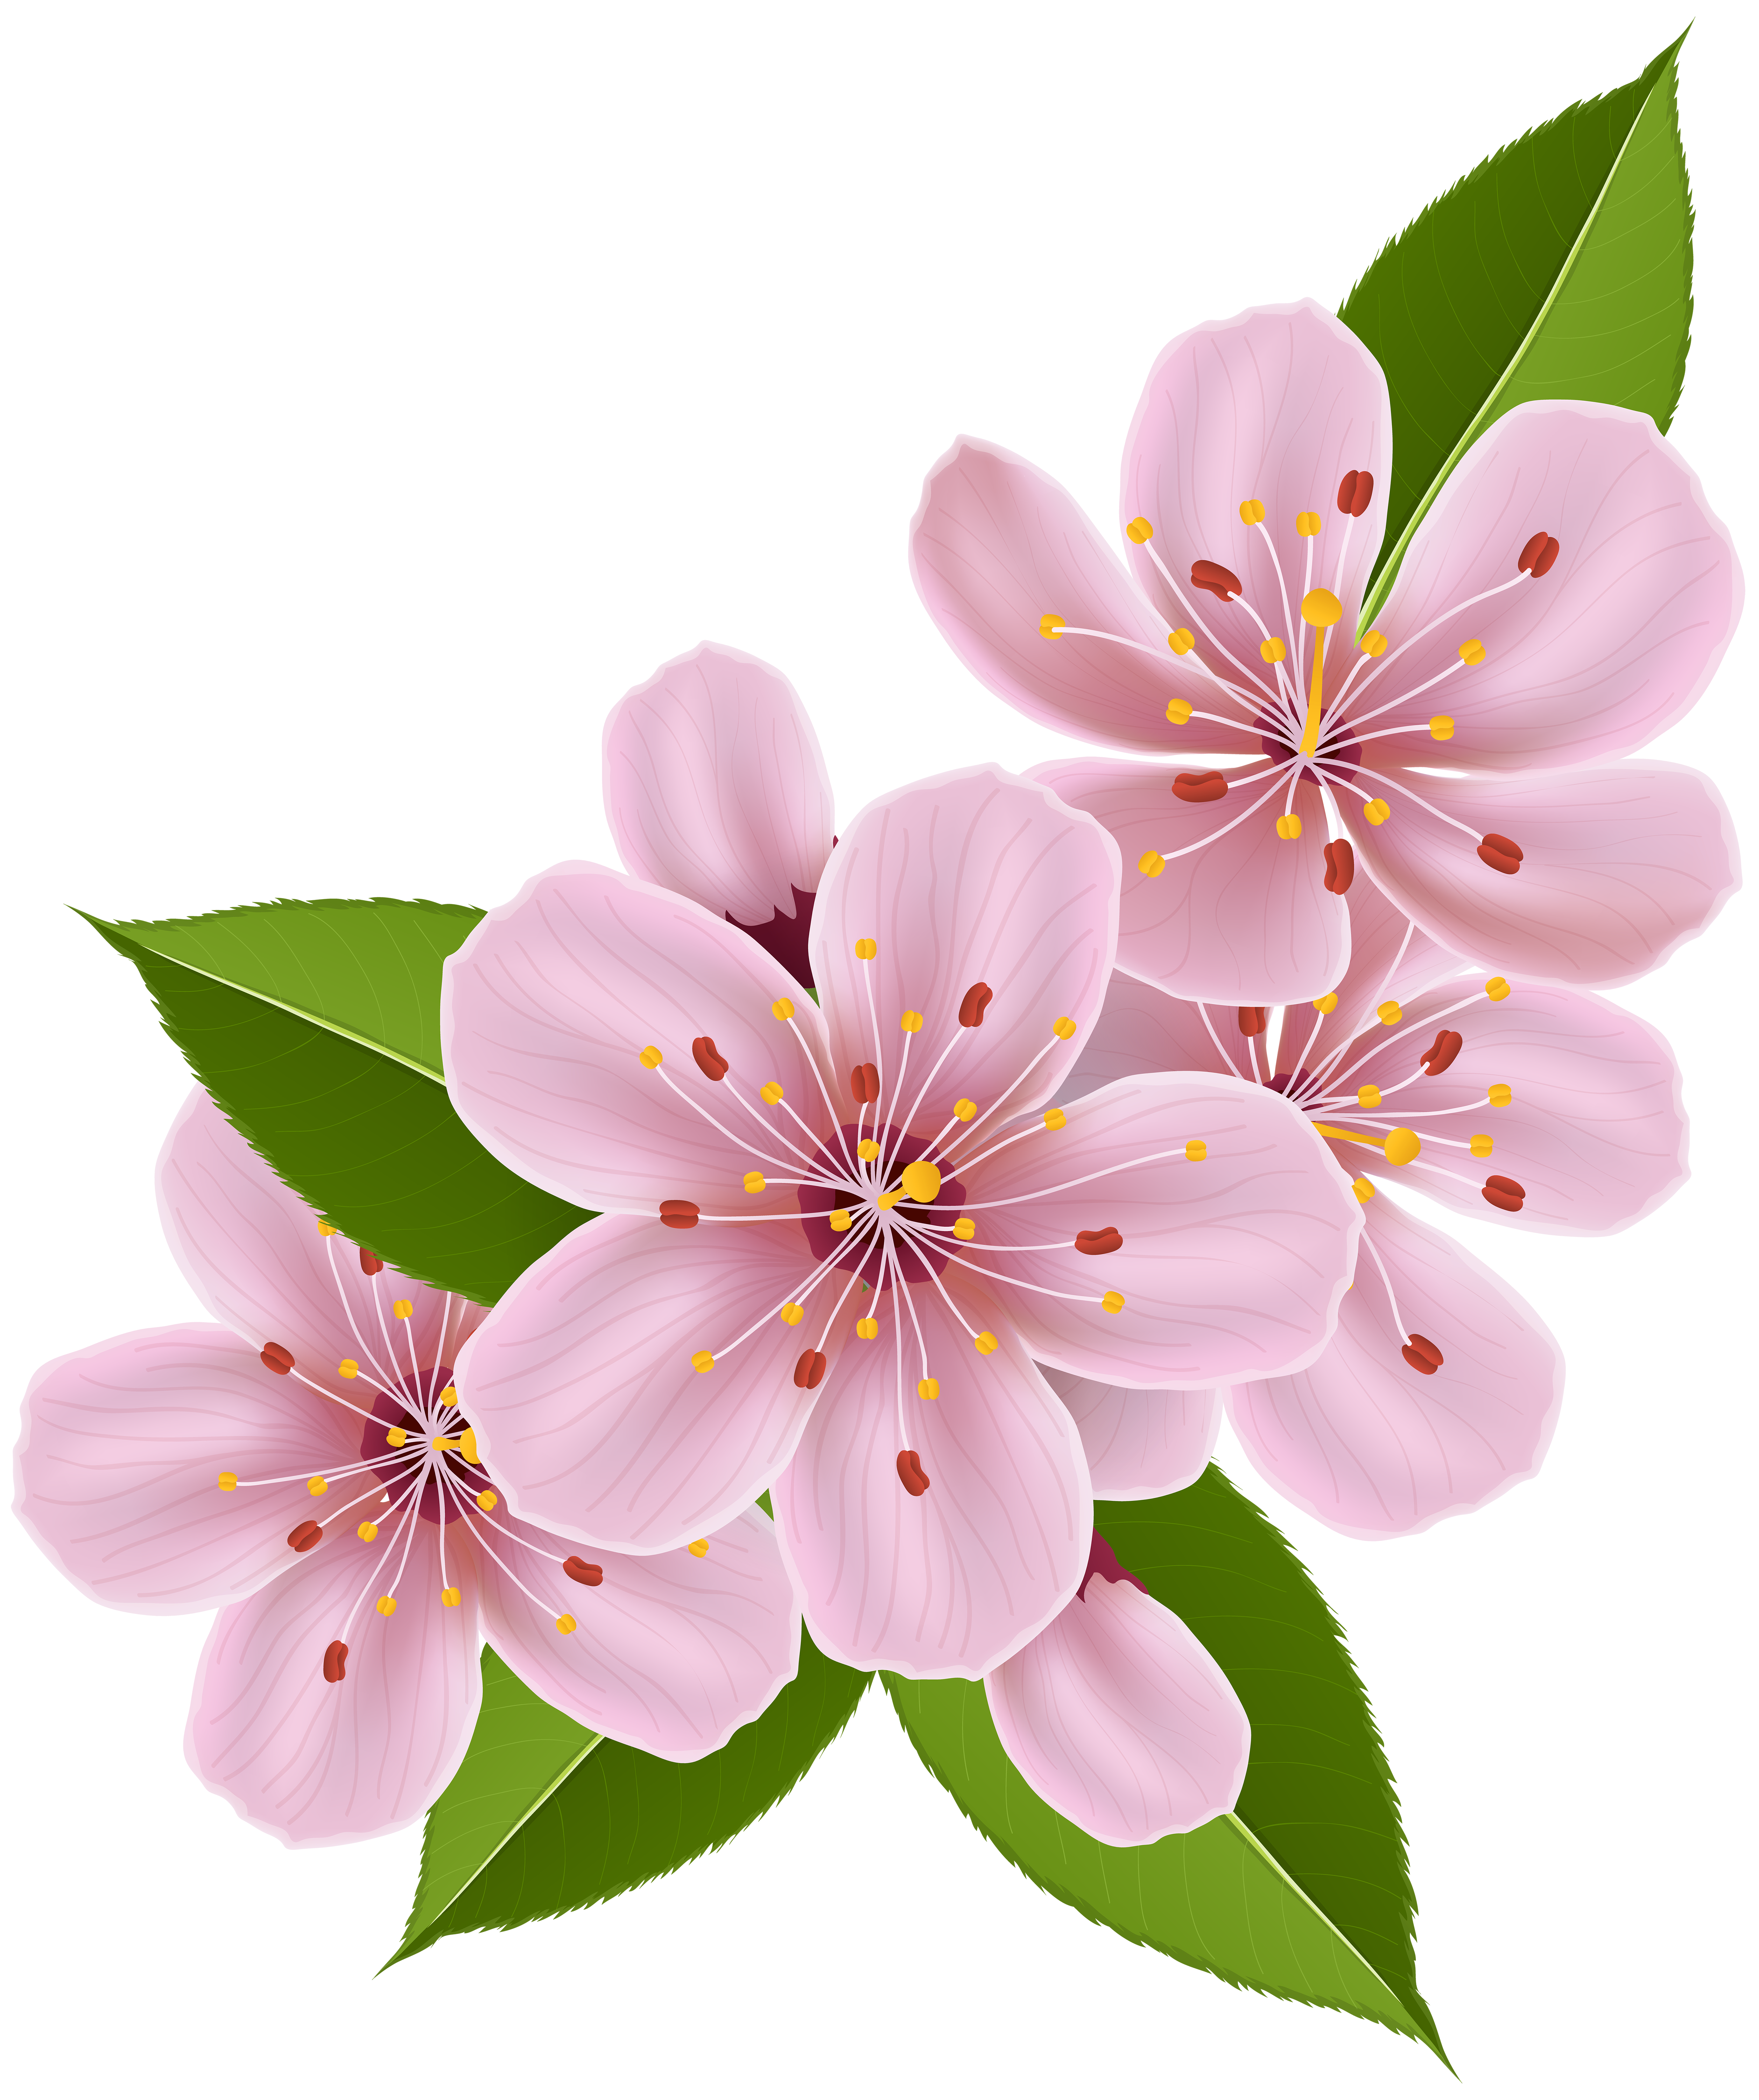 Spring flowers clip art. Cherry blossom png image download